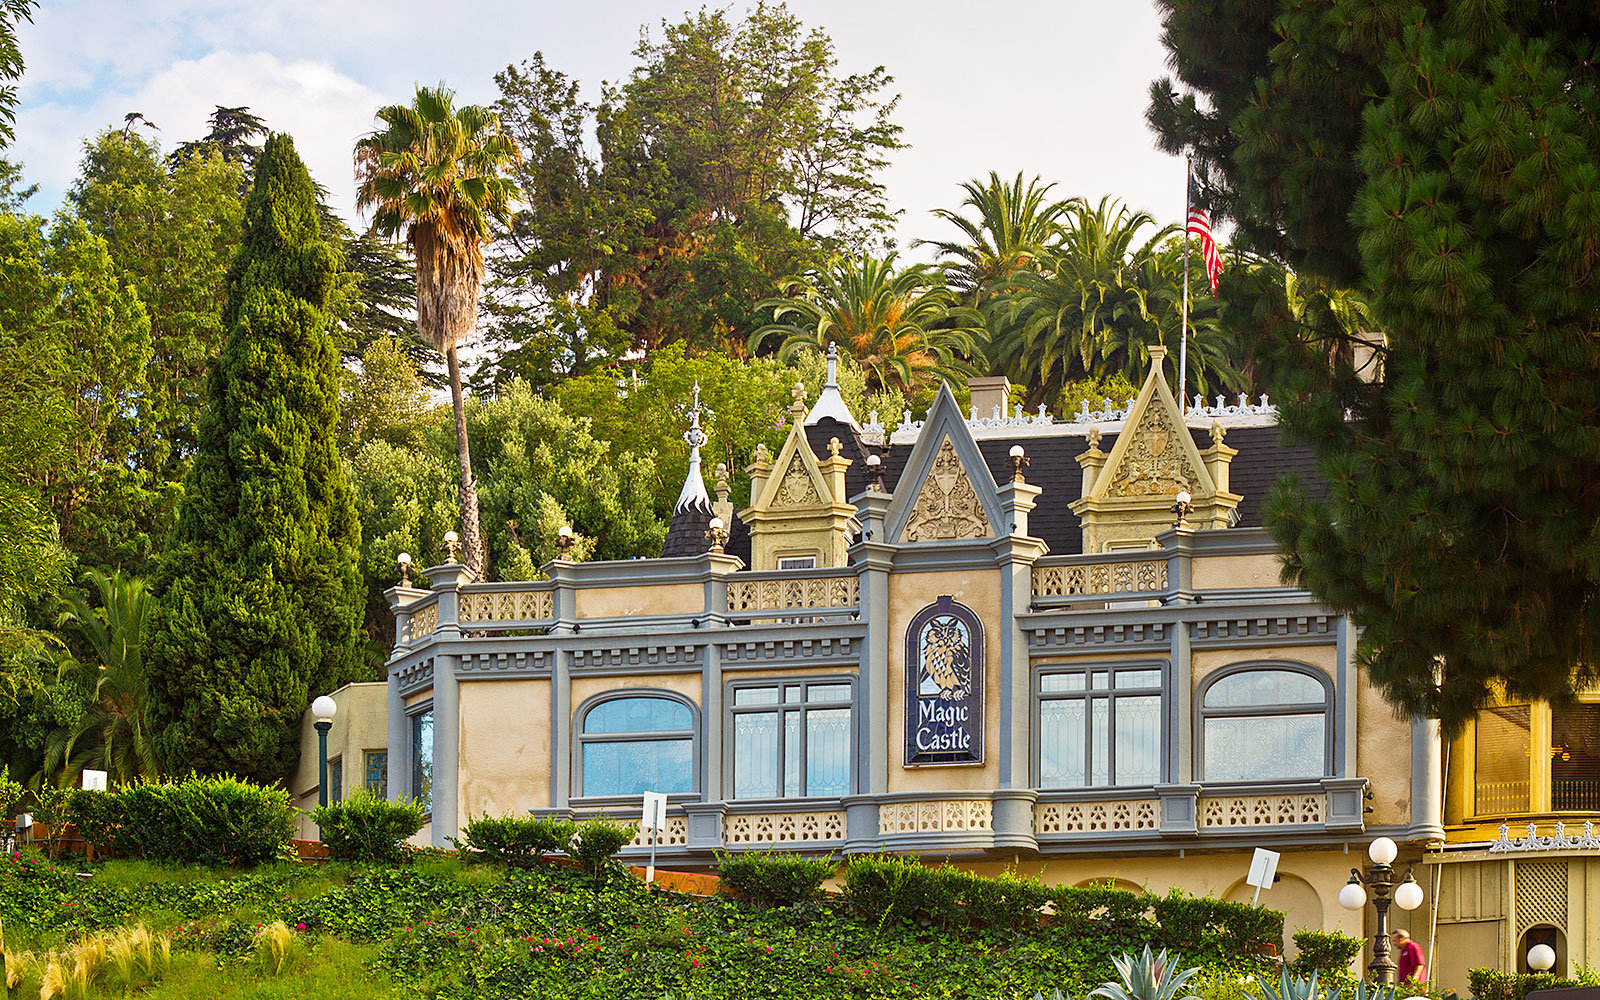 Second magic castle in LA